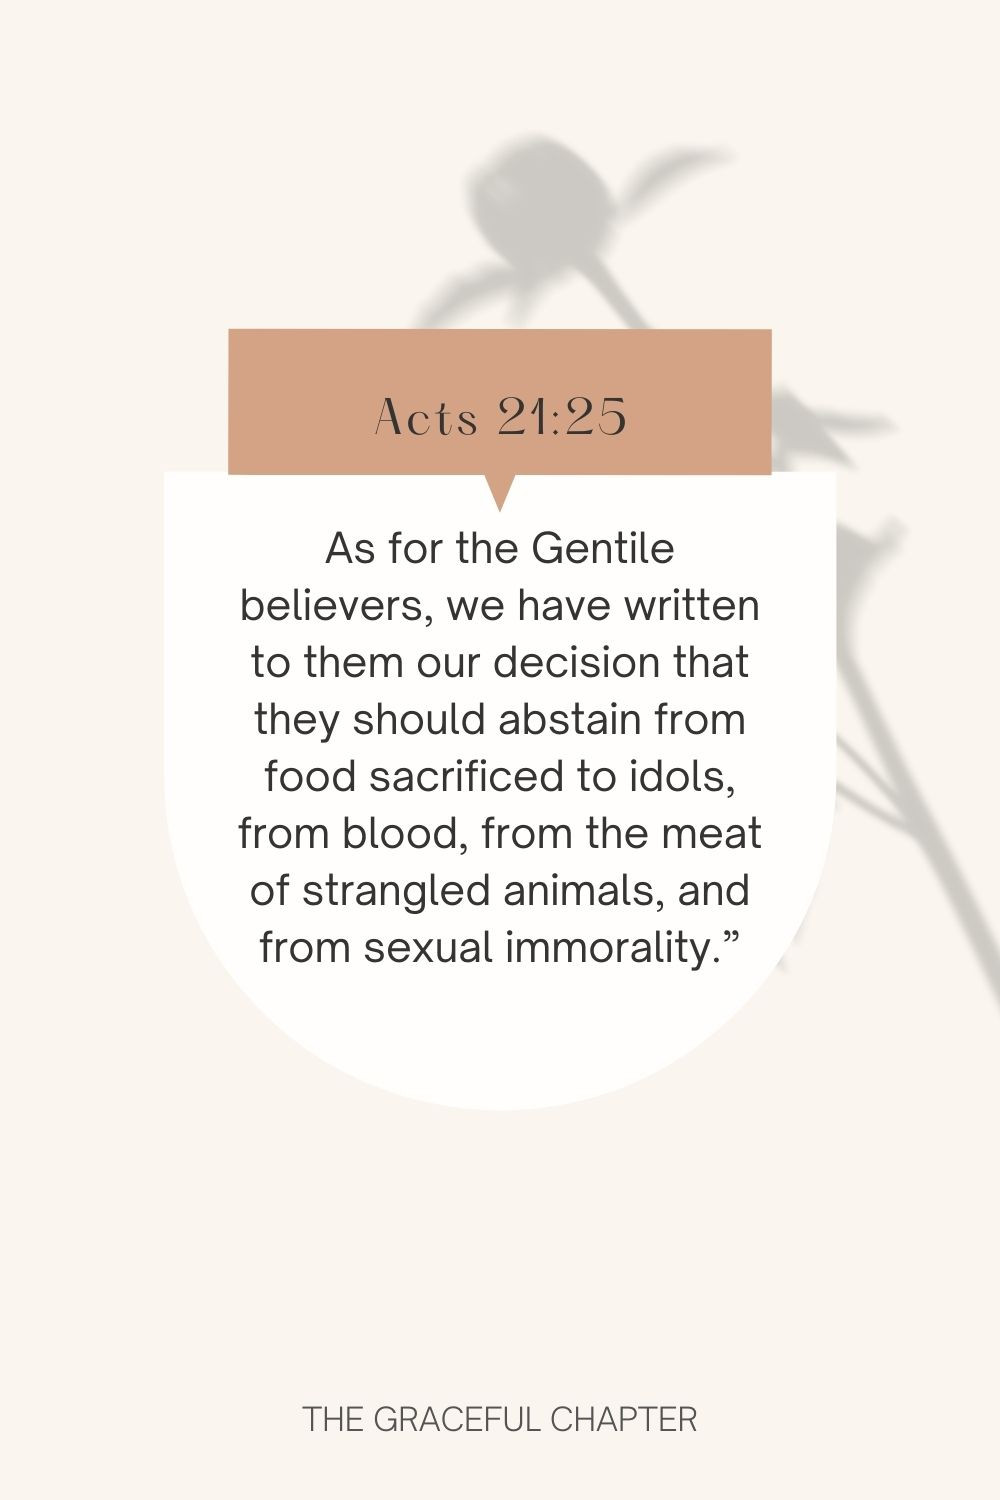 """As for the Gentile believers, we have written to them our decision that they should abstain from food sacrificed to idols, from blood, from the meat of strangled animals, and from sexual immorality."""" Acts 21:25"""